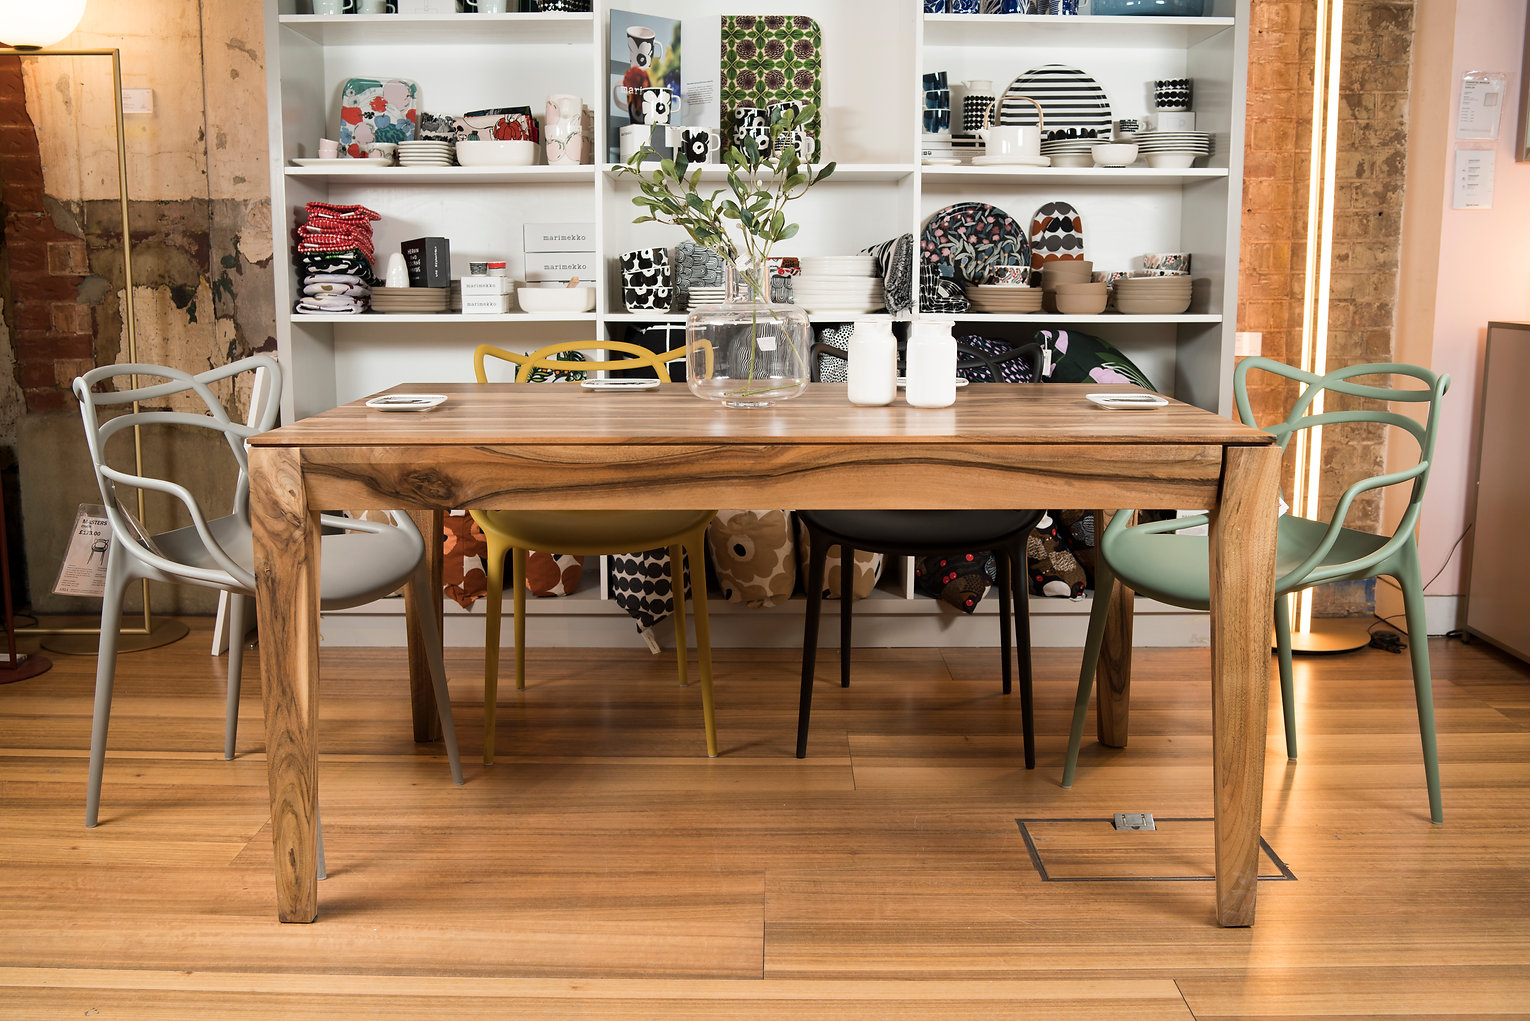 Rectangular, extendable, solid wood dining table